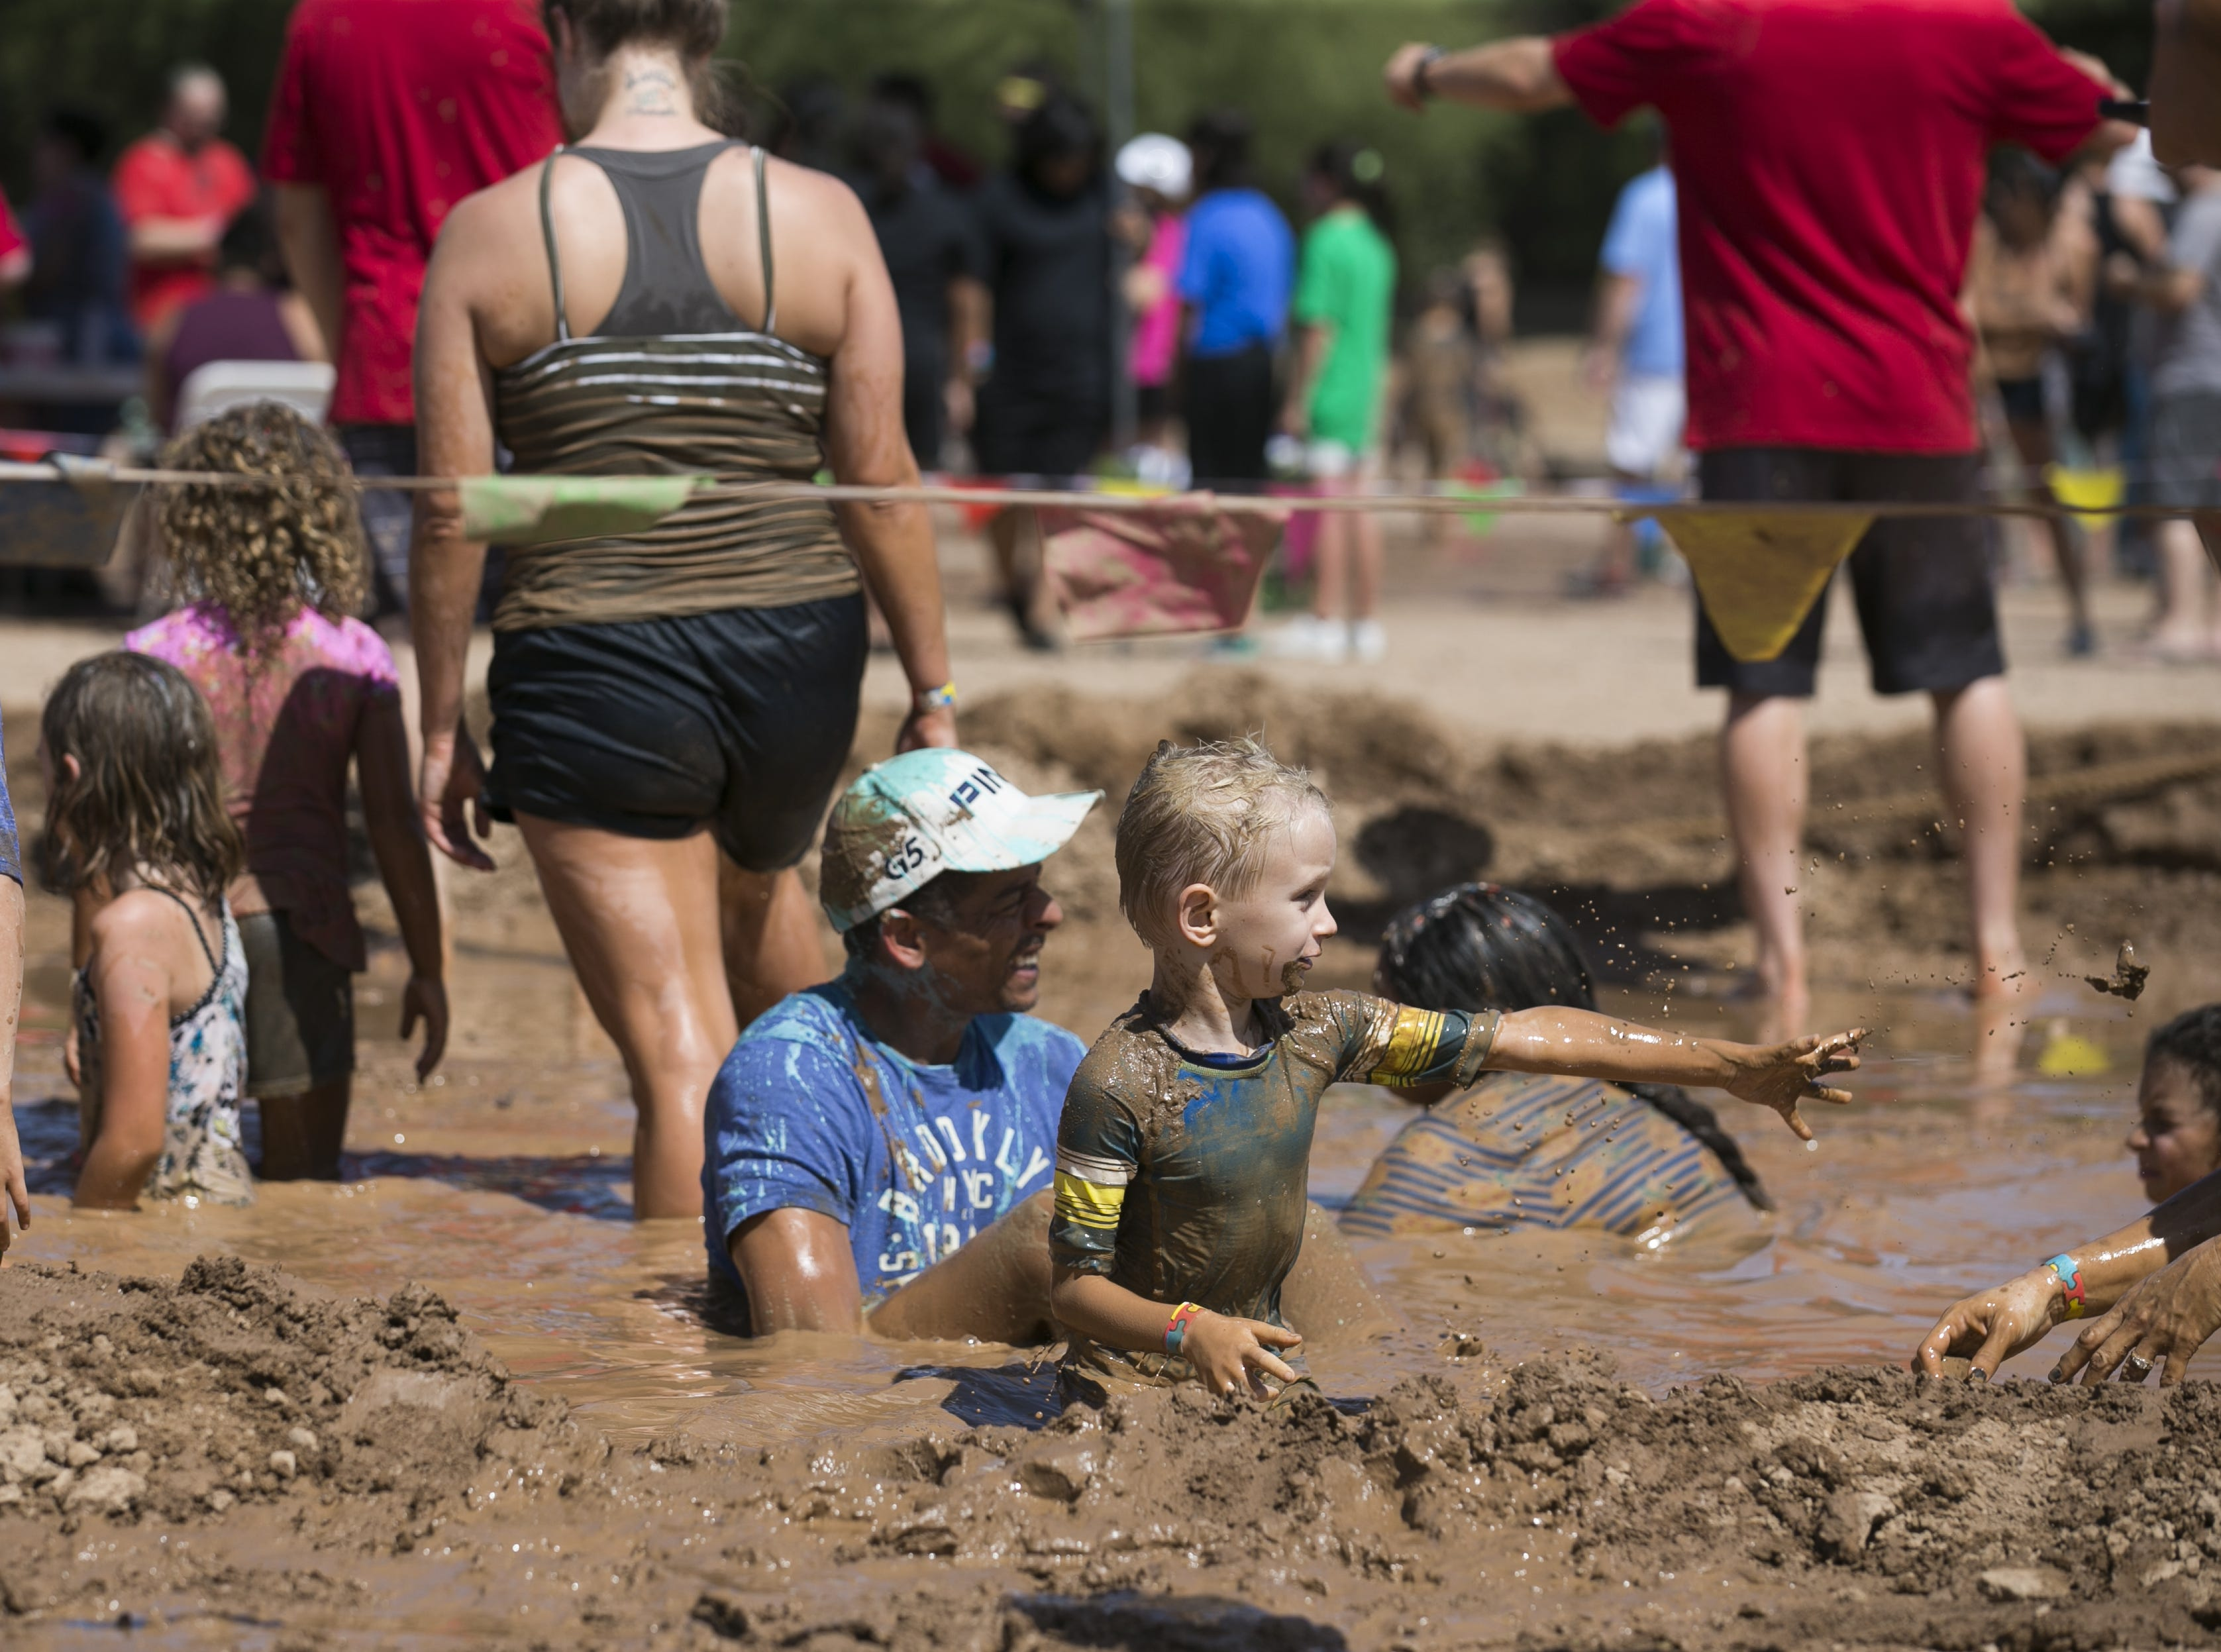 Kids and adults play in a mud pit at the third annual Messy Fest in Queen Creek on Saturday, Sept. 15, 2018.